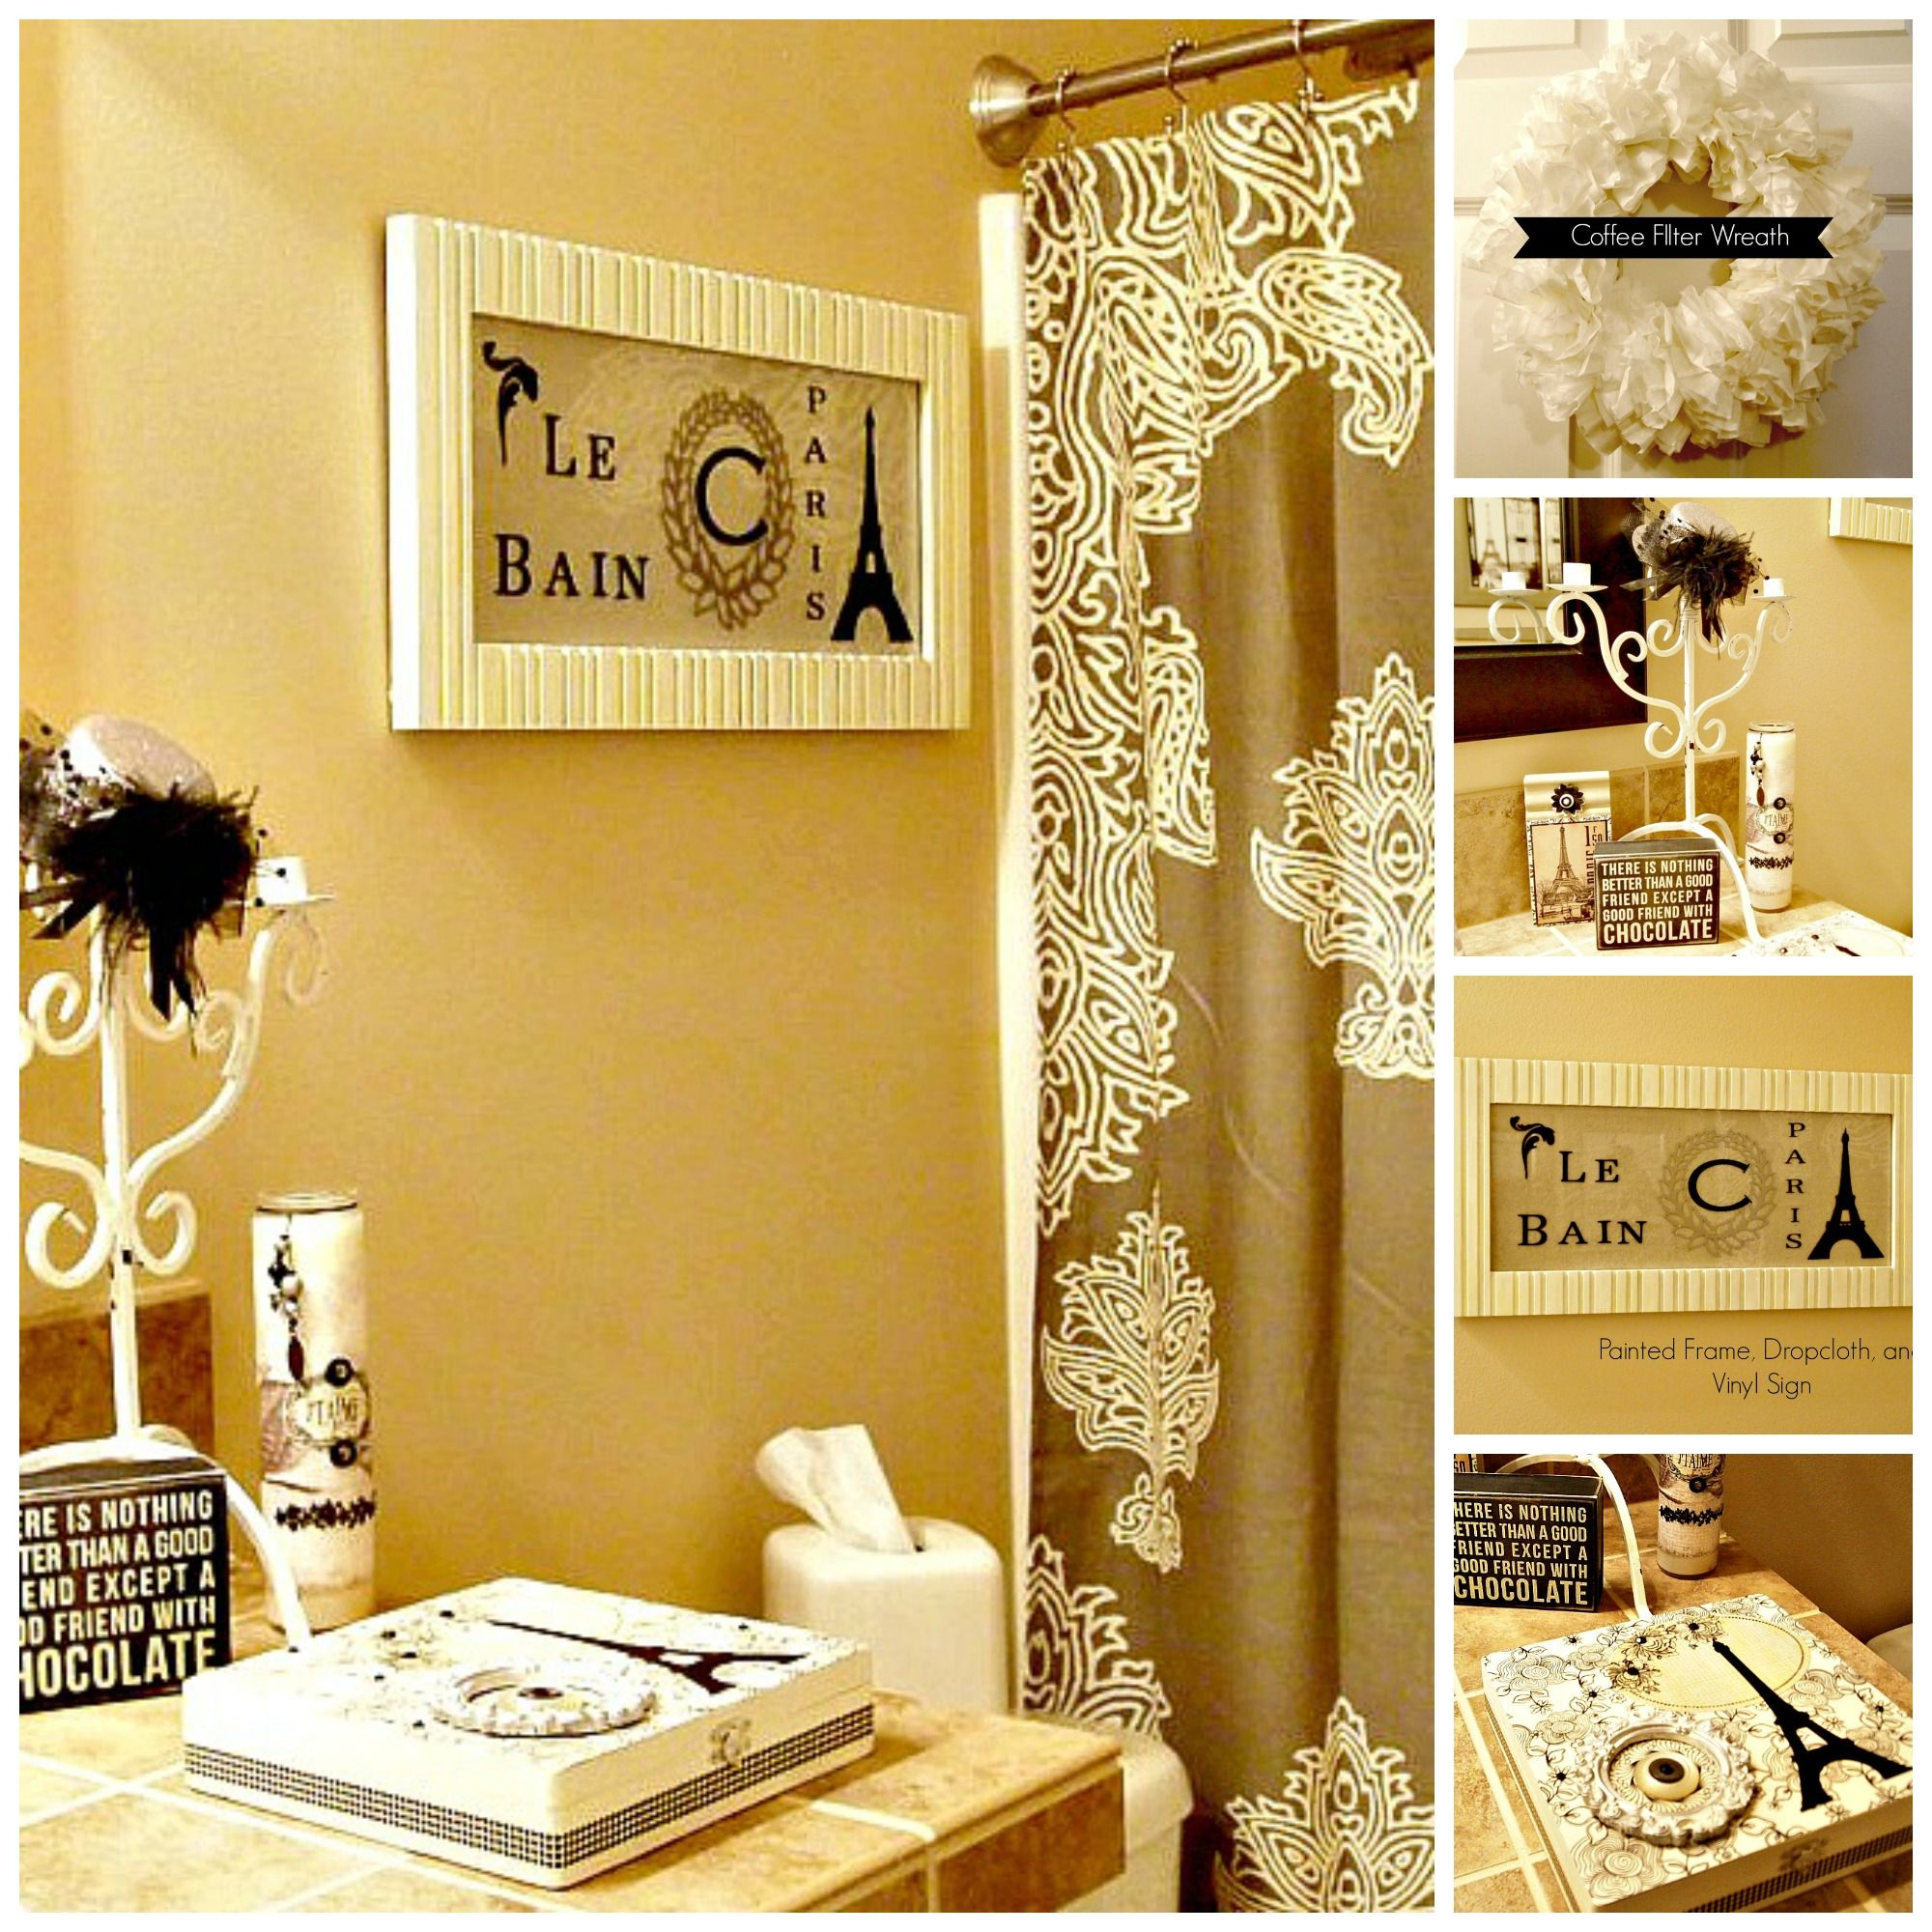 Room Makeover Using What You Have | Easy diy projects, Guest bath ...